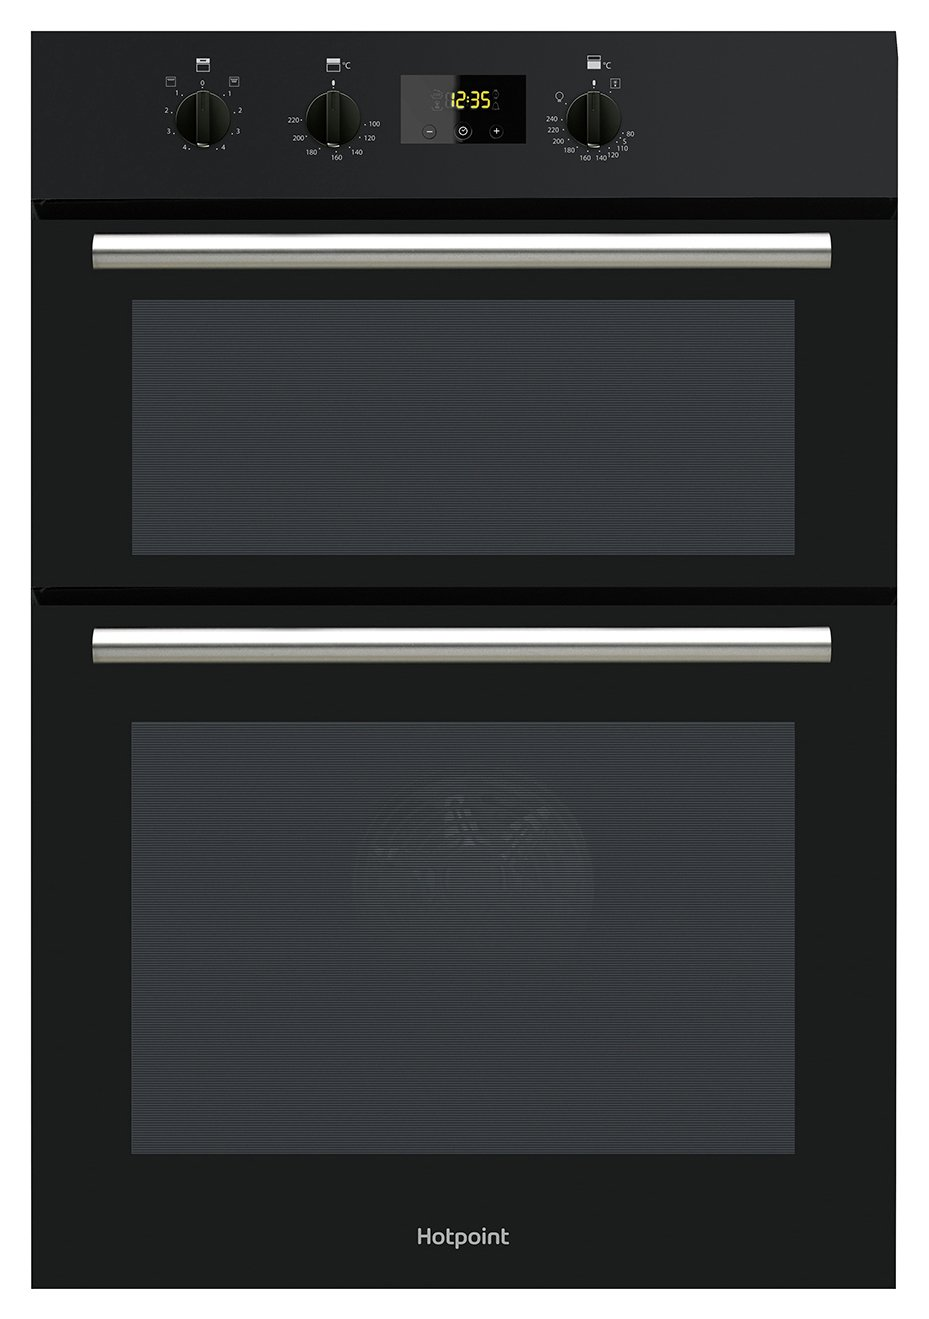 Hotpoint - DD2540BL - Built-In Double Oven - Black